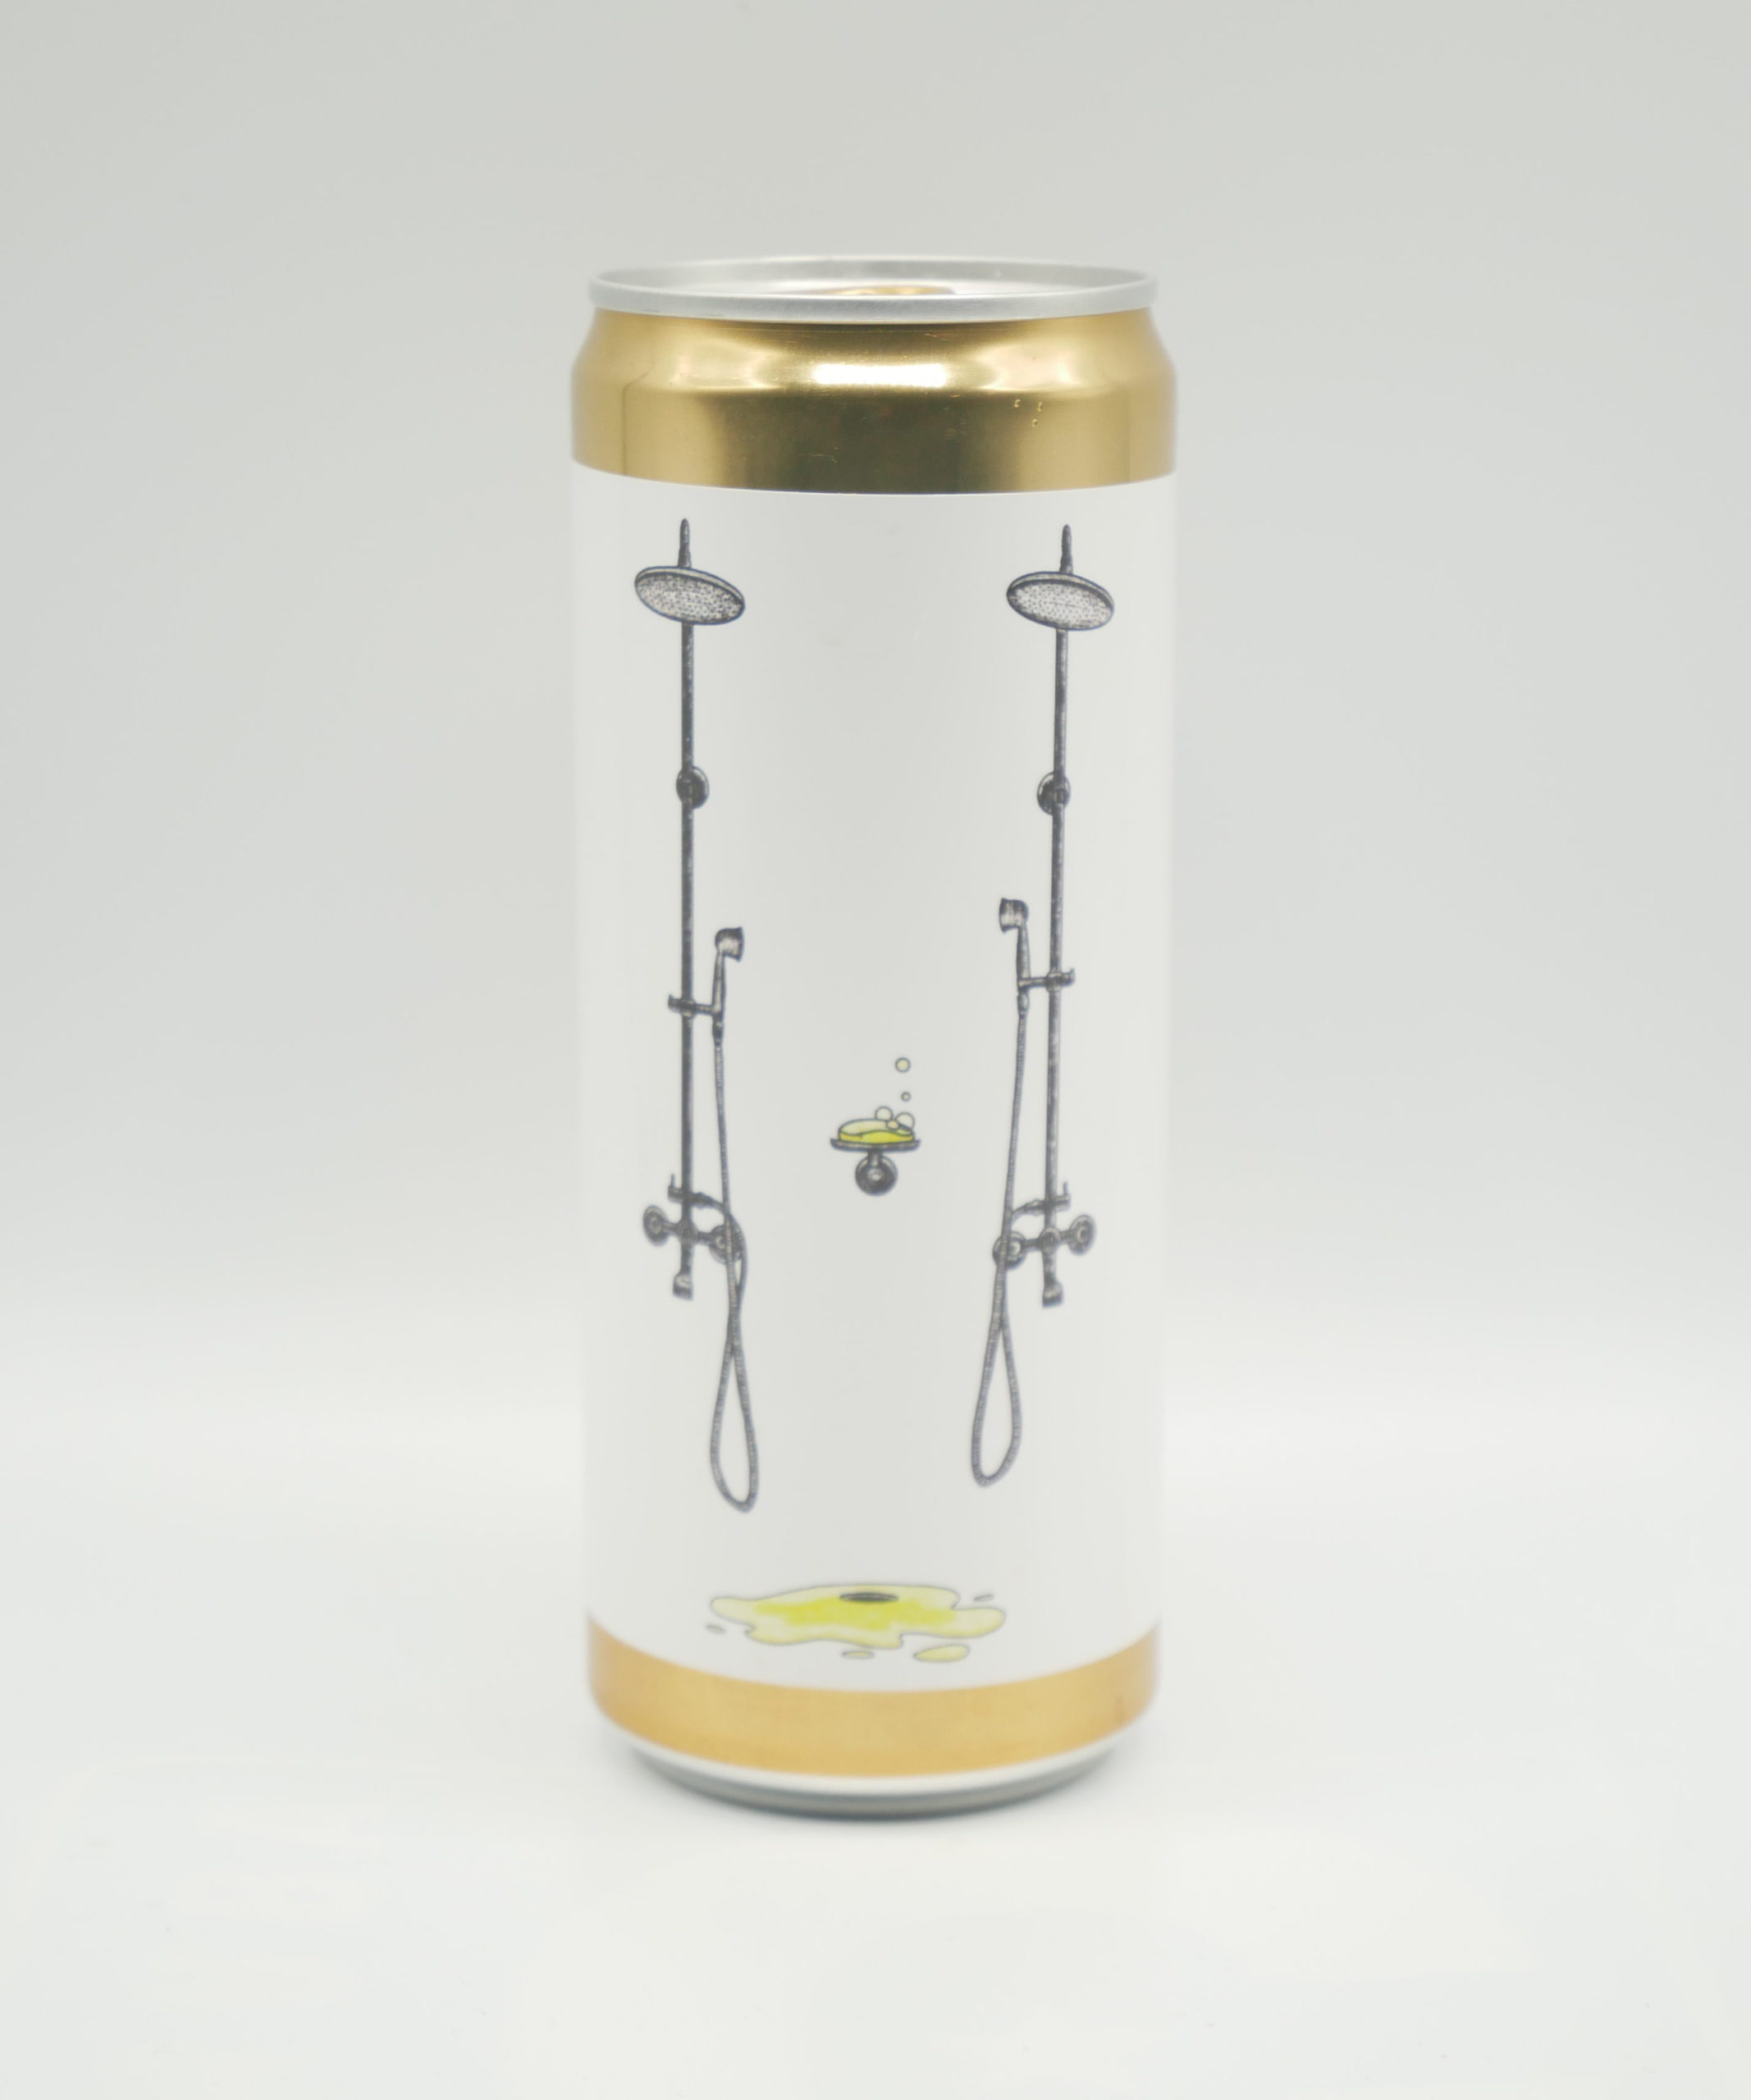 Image Double Shower DIPA